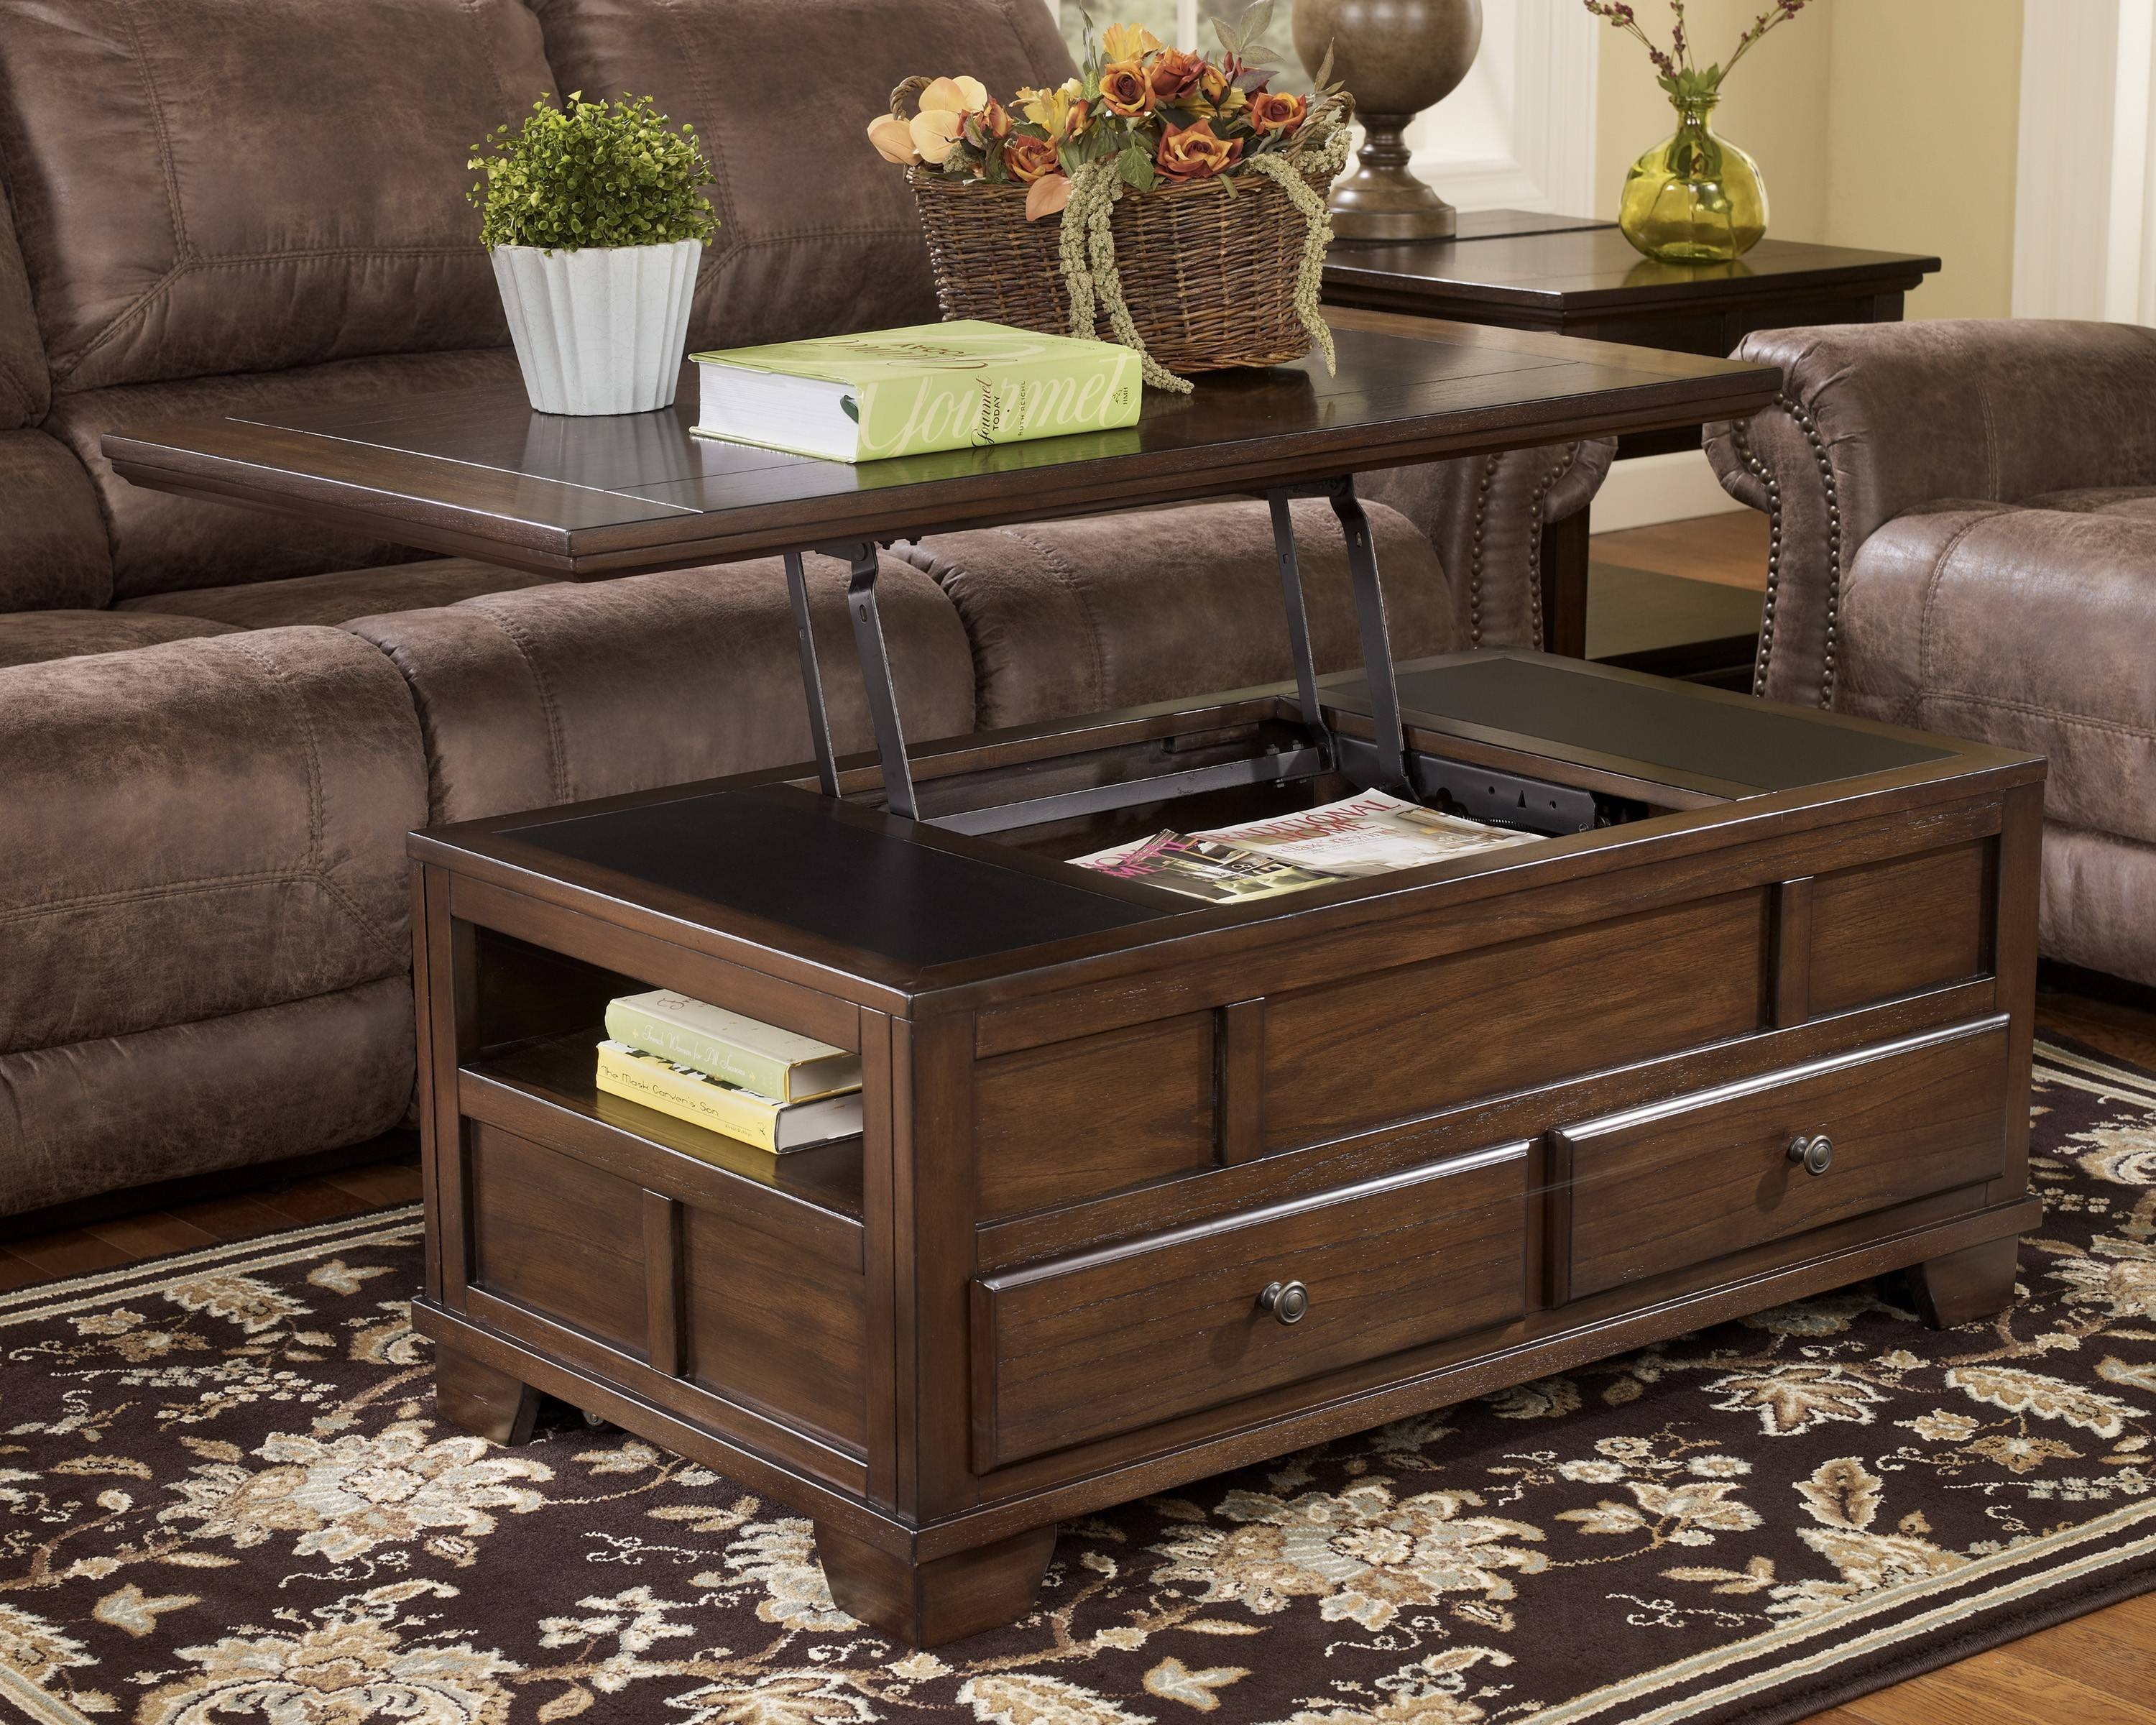 Coffee Table: Enchanting Dark Brown Coffee Table Design Ideas Dark pertaining to Dark Wood Coffee Table Storages (Image 10 of 30)